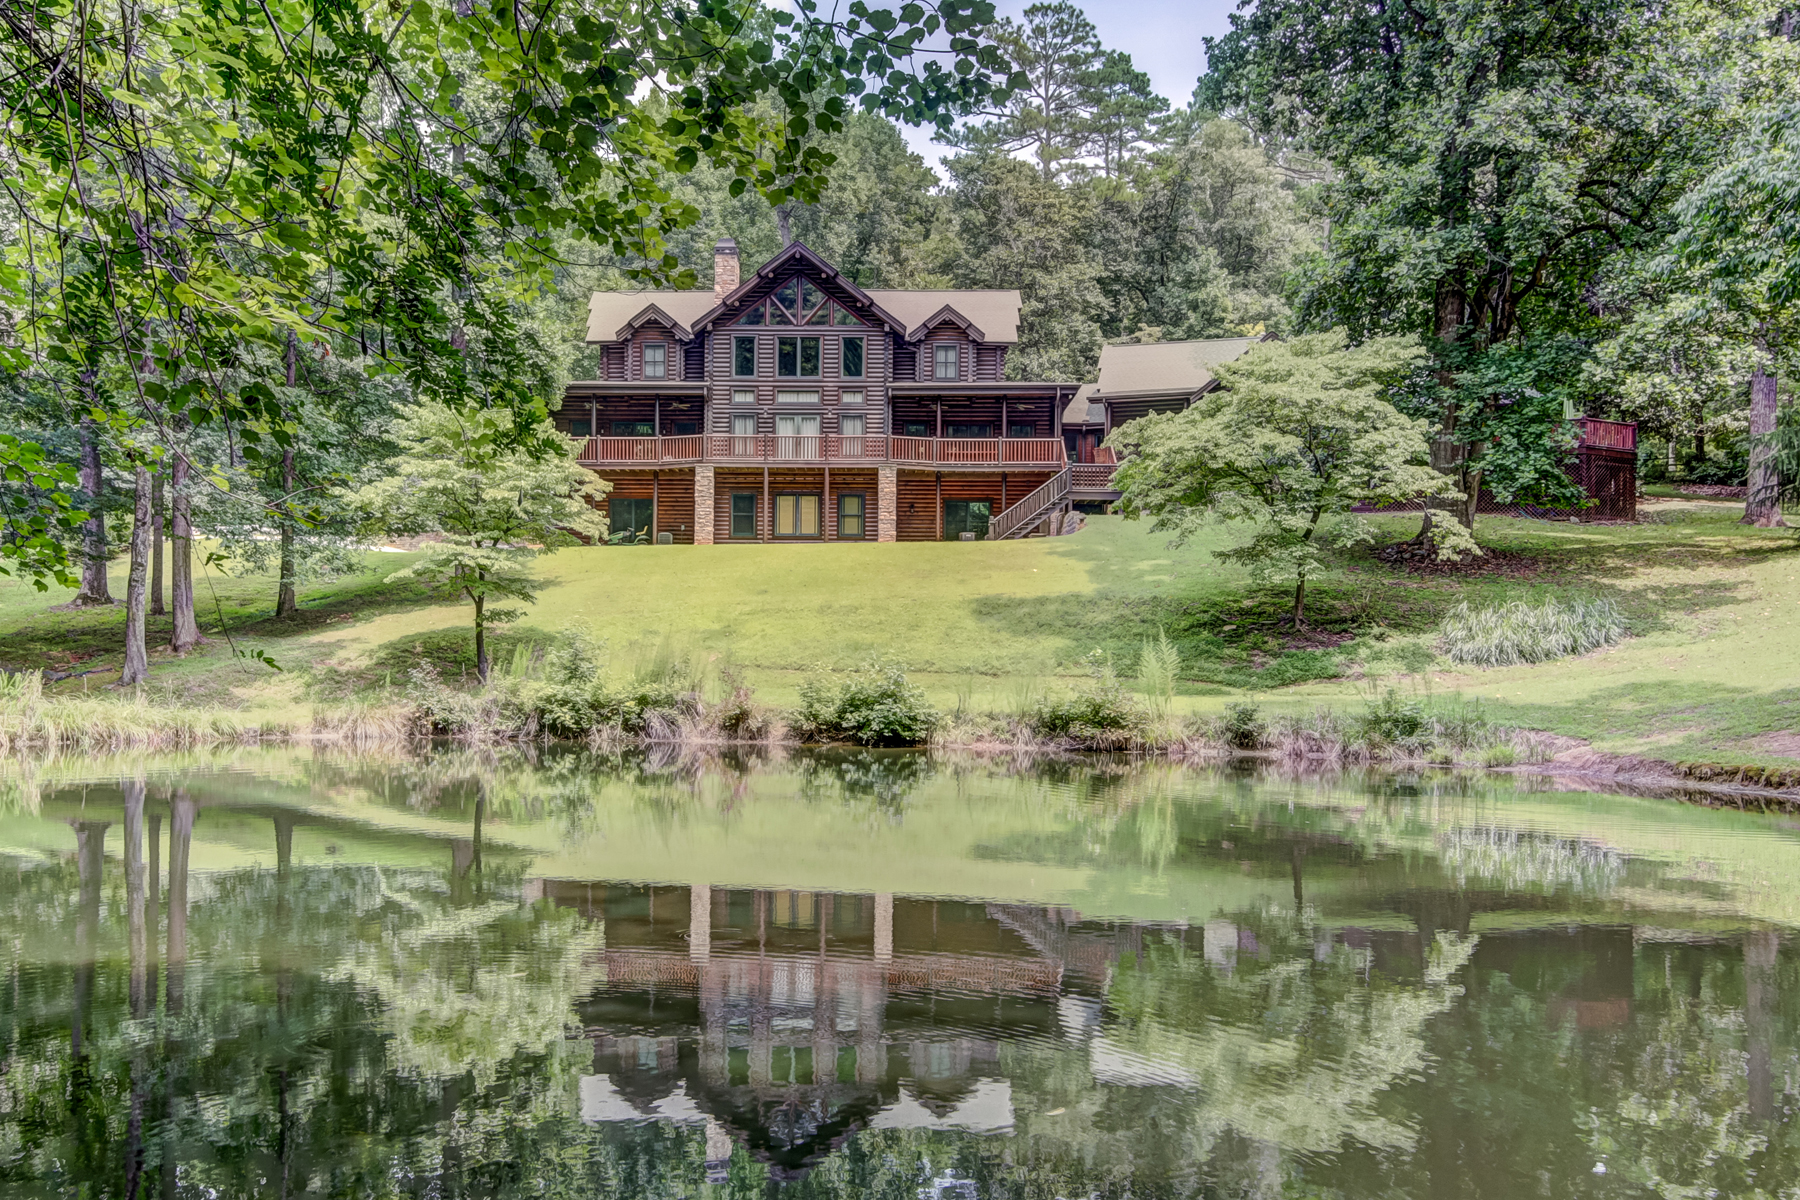 Single Family Home for Sale at A Natural Oasis In Sandy Springs 8900 Island Ferry Rd Sandy Springs, Georgia 30350 United States